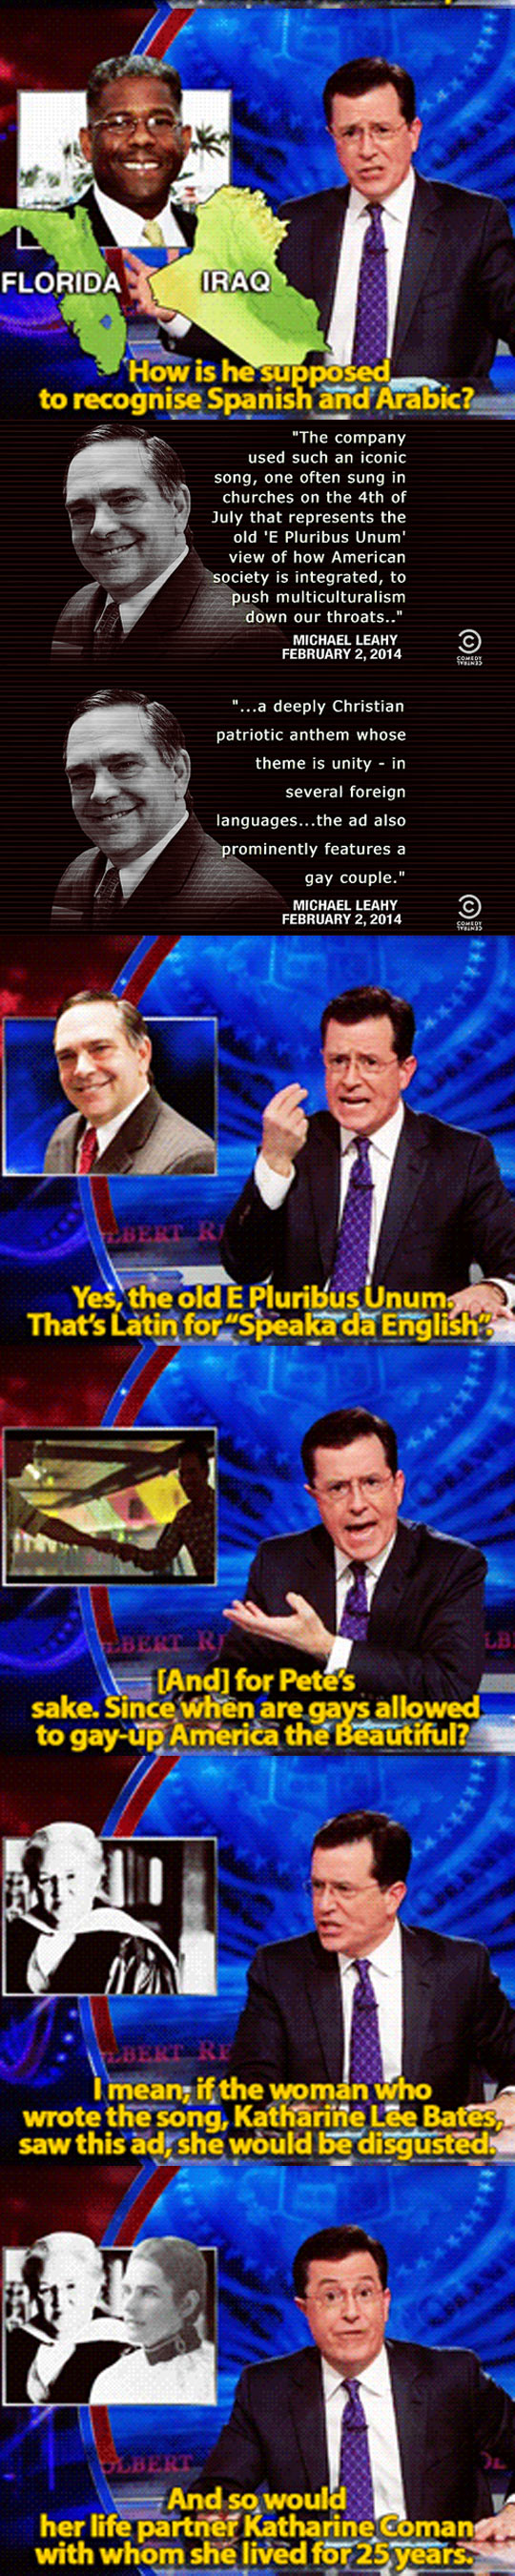 funny-Stephen-Colbert-about-coke-ad-language